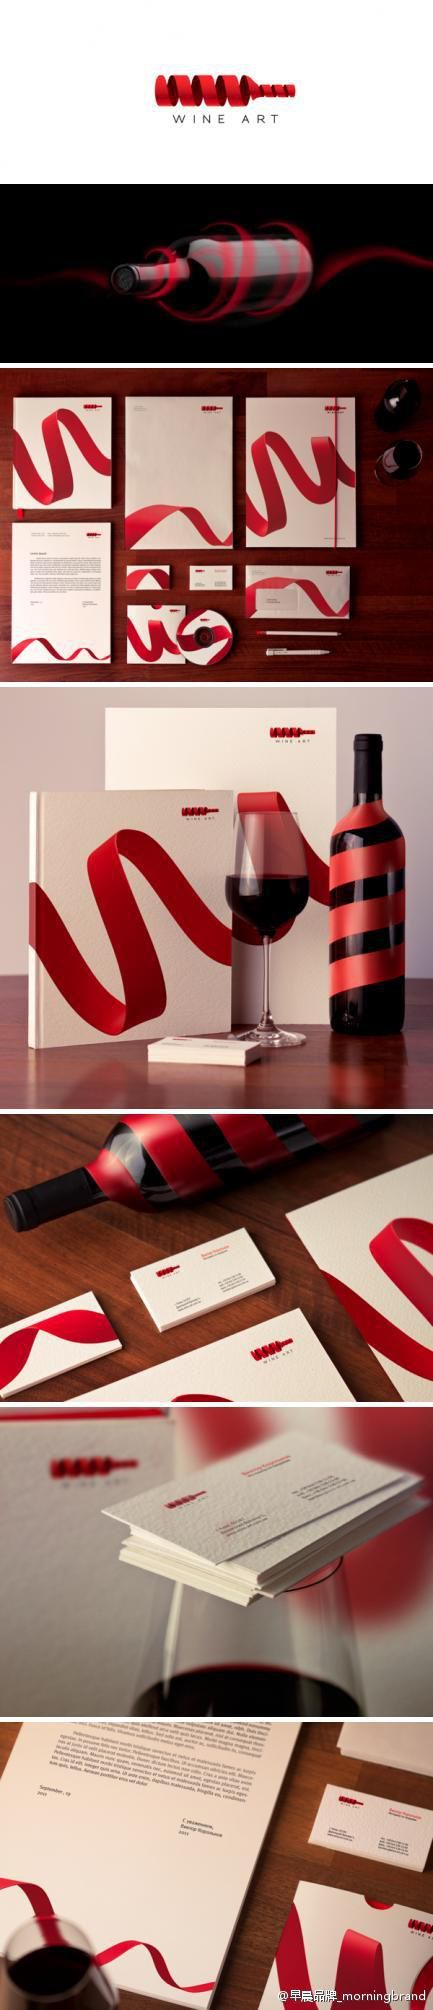 花瓣 Wine art #packaging #branding PD #vinosmaximum wine / vinho / vino